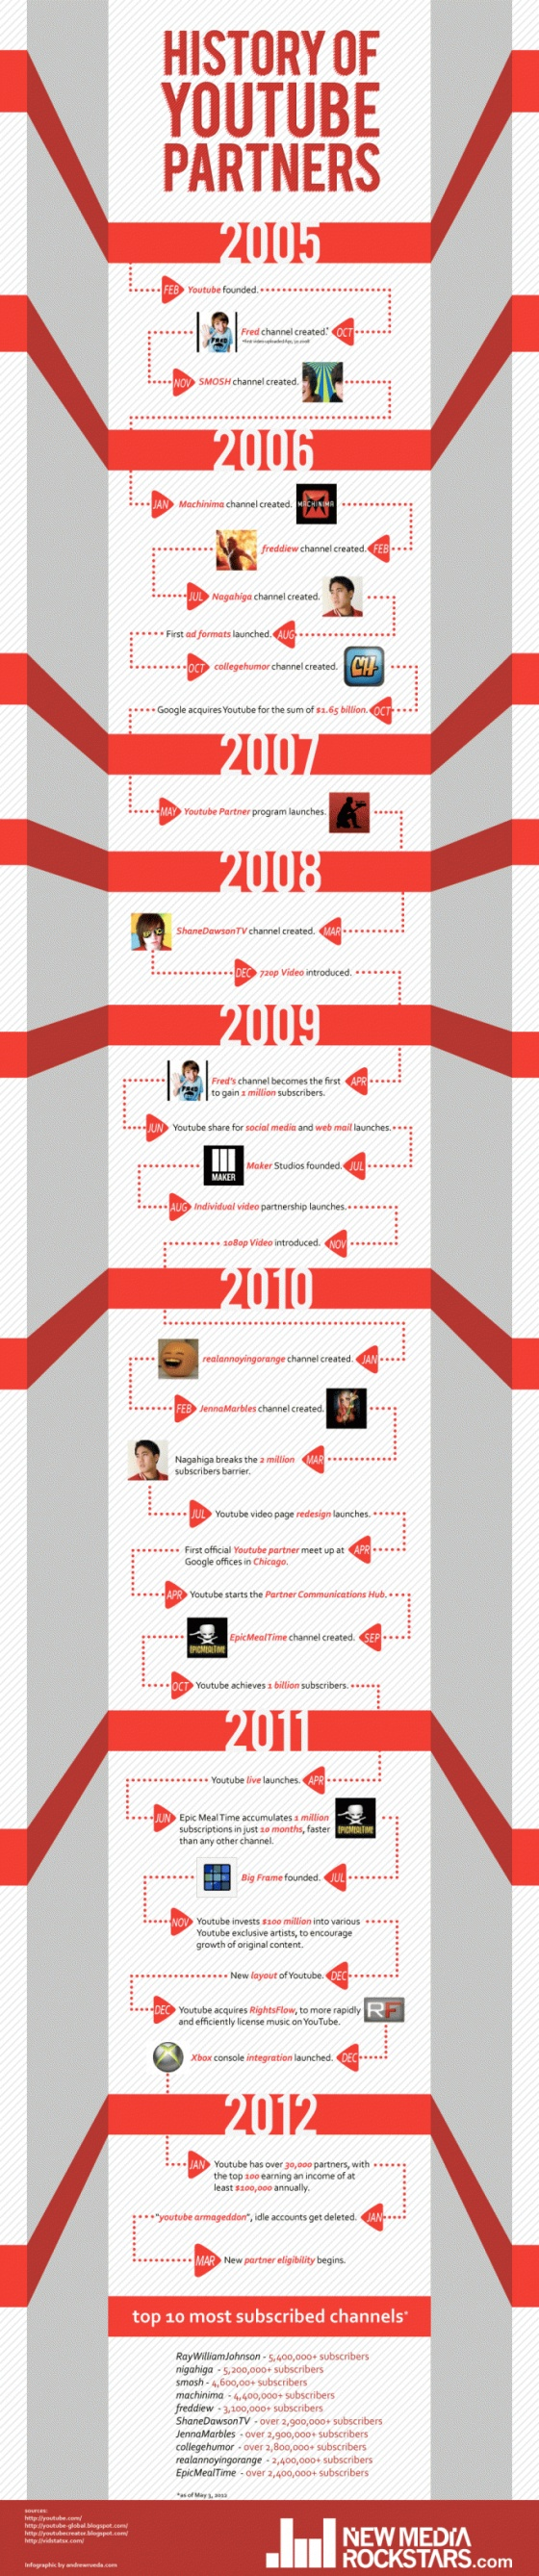 History of YouTube Partners: How the Video Site Met Fred, SMOSH, Machinima, freddiew, Nigahiga, and more.